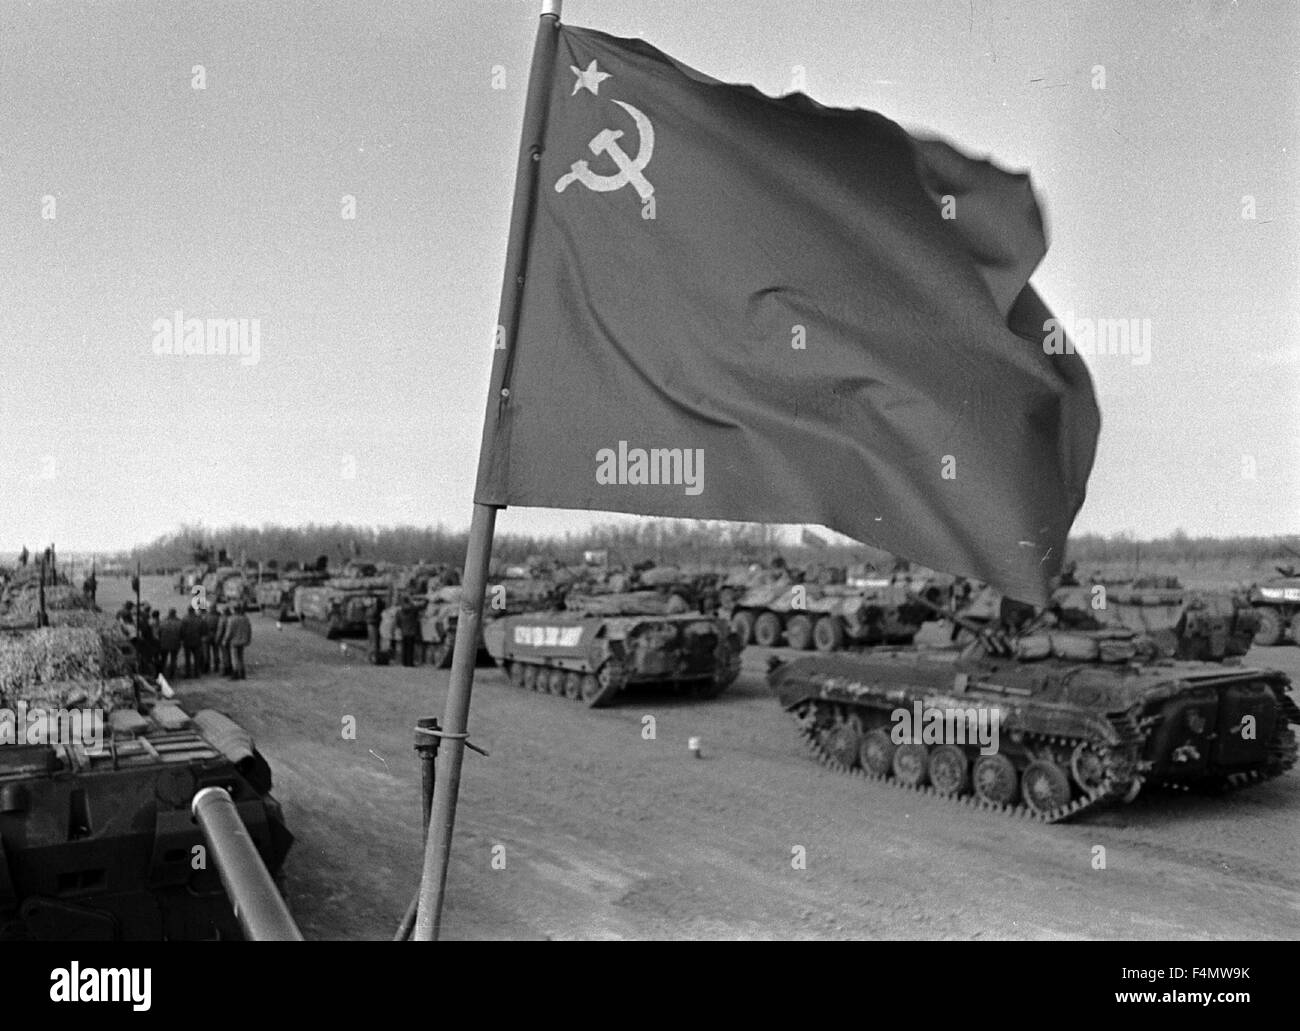 Soviet Afghanistan war - Page 6 Ussr-termez-withdrawal-of-soviet-forces-from-afghanistan-soldiers-F4MW9K